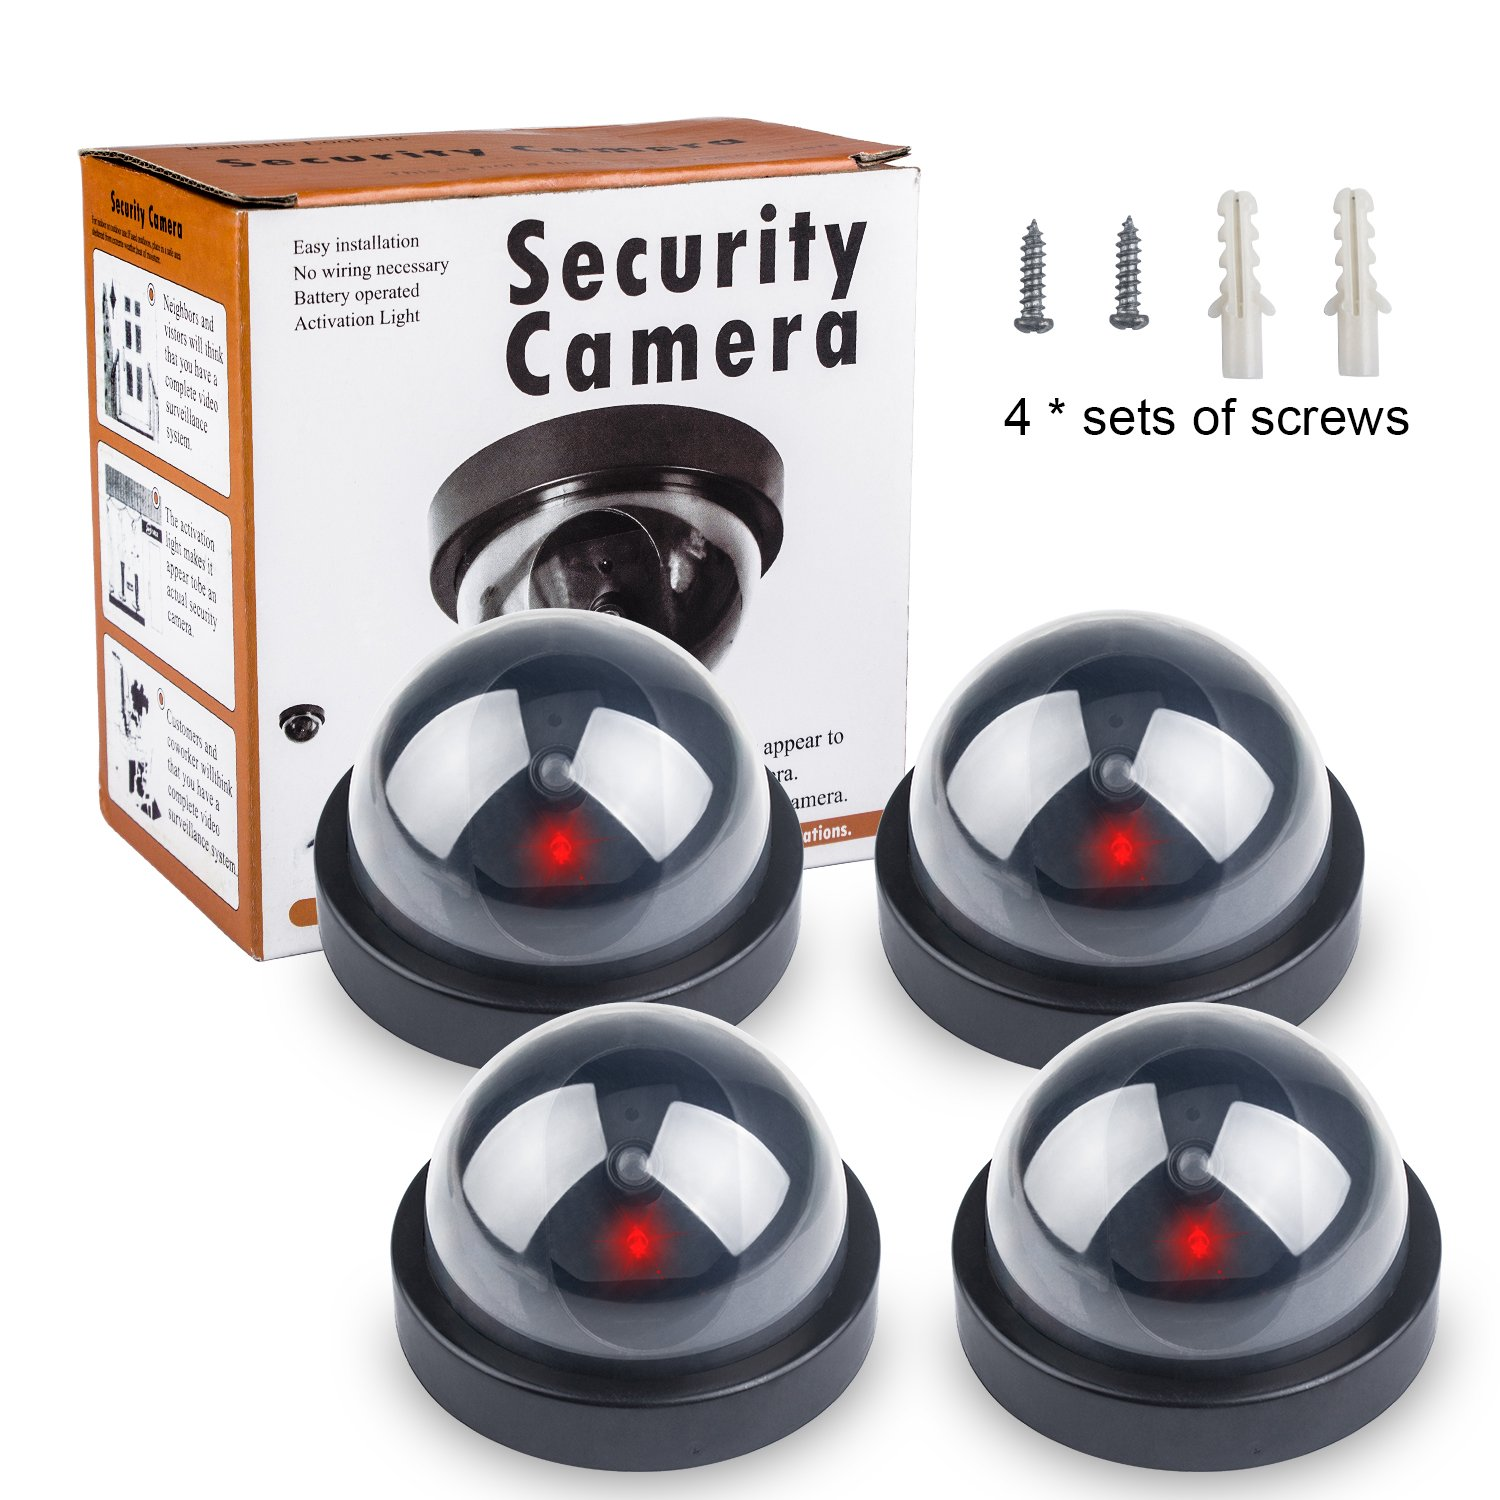 4 Pack Fake Dummy Camera, Beinhome Dummy Fake Security CCTV Dome Camera with Flashing Red LED Light with Warning Security Alert Sticker Decals